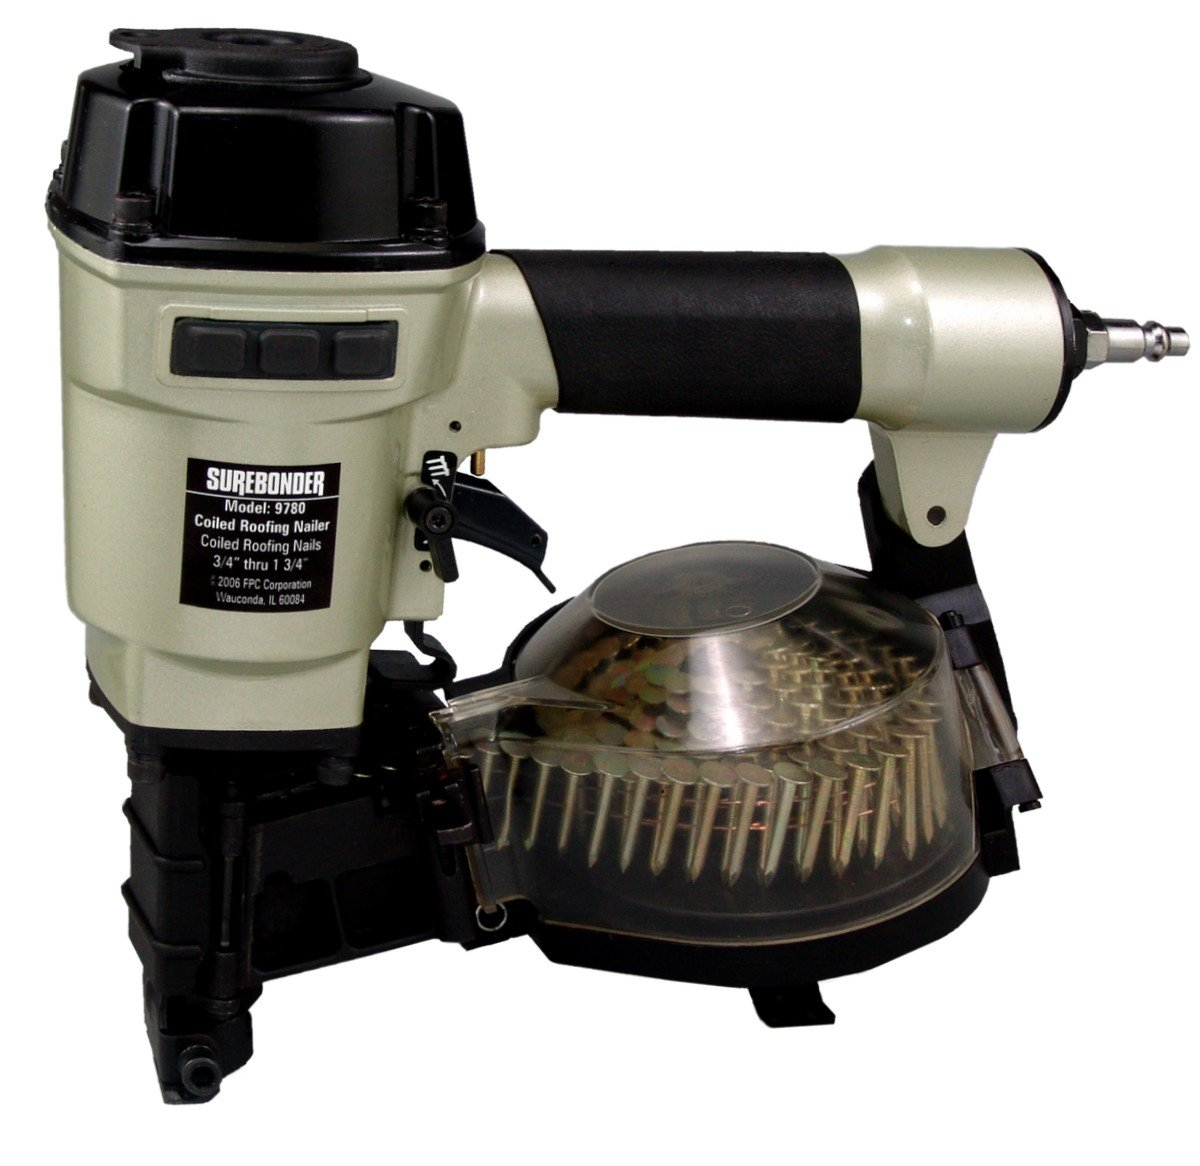 Surebonder 9780 Pneumatic Coiled Roofing Nailer With Carrying Case   Power Roofing  Nailers   Amazon.com